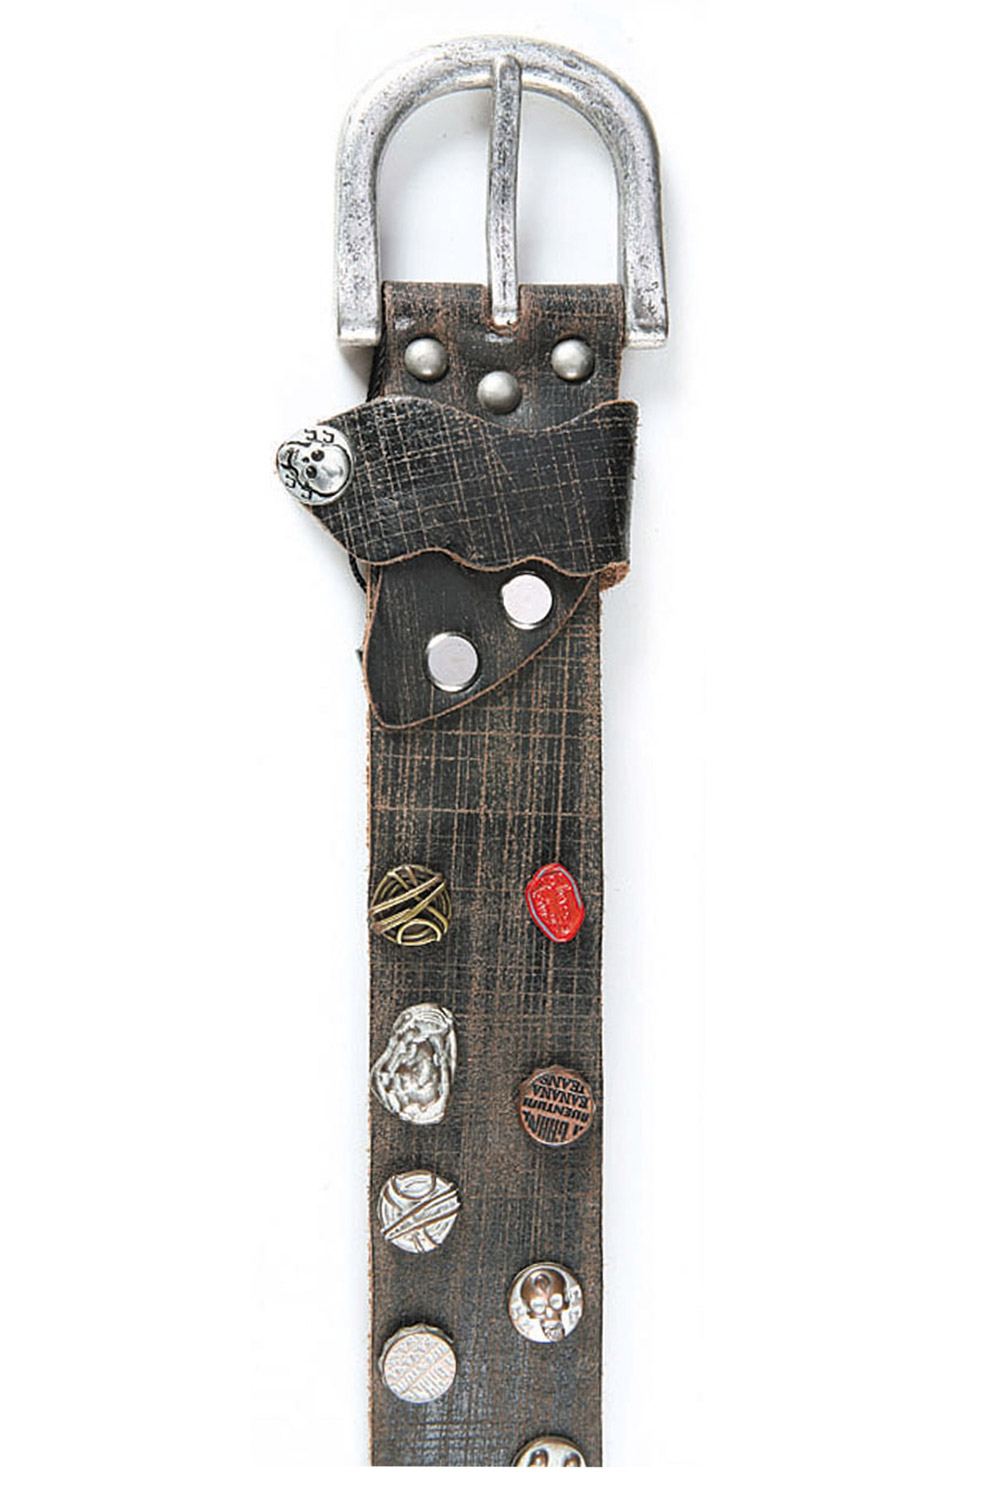 Art Sports Belt from natural dark brown skin with small buttons and skulls - 511914